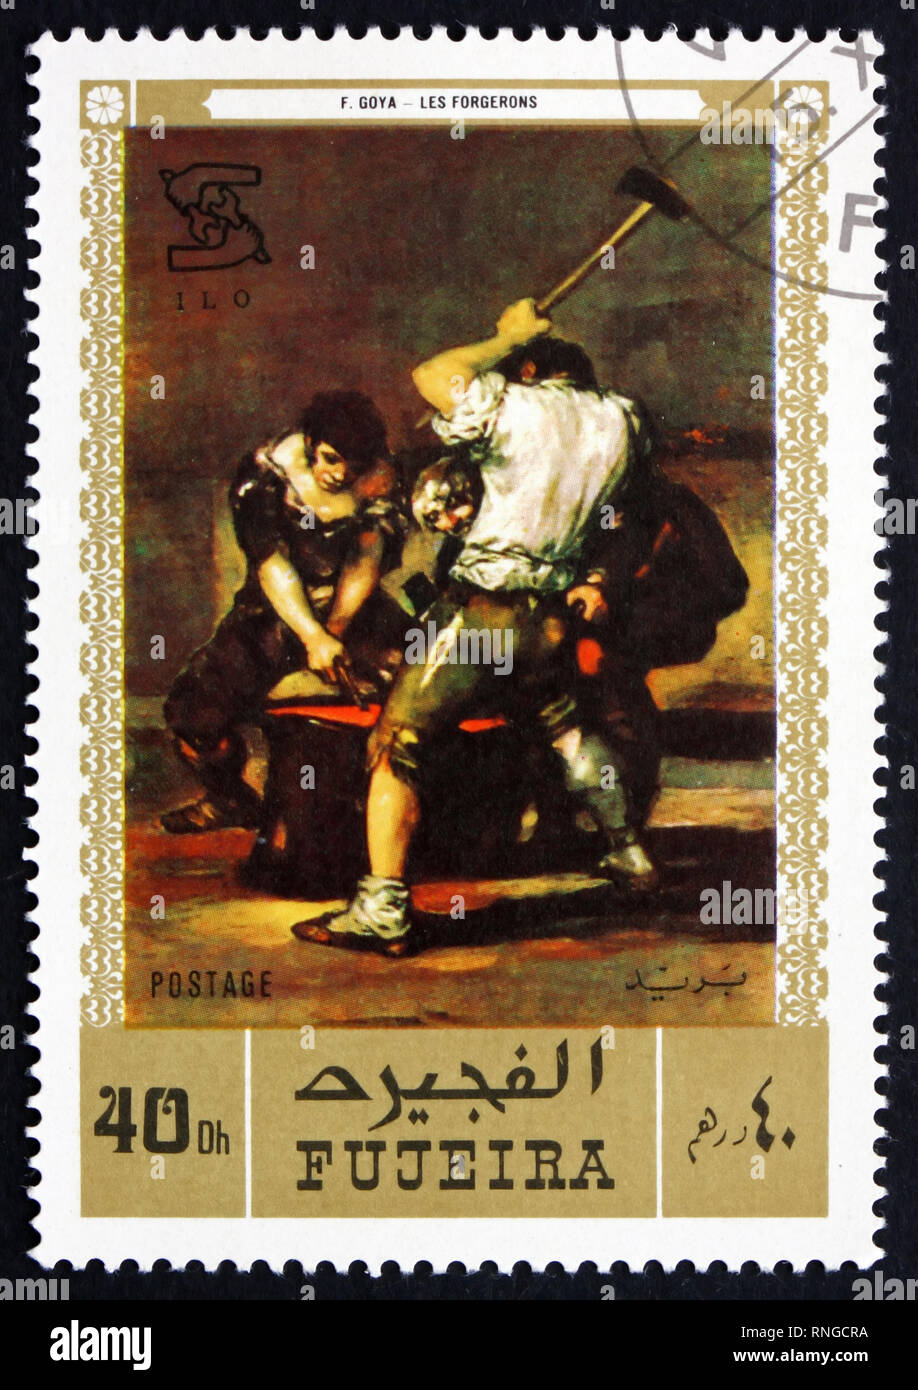 FUJEIRA - CIRCA 1971: a stamp printed in the Fujeira shows The Forge, Painting by Francisco de Goya y Lucientes, Spanish Painter and Printmaker, circa - Stock Image